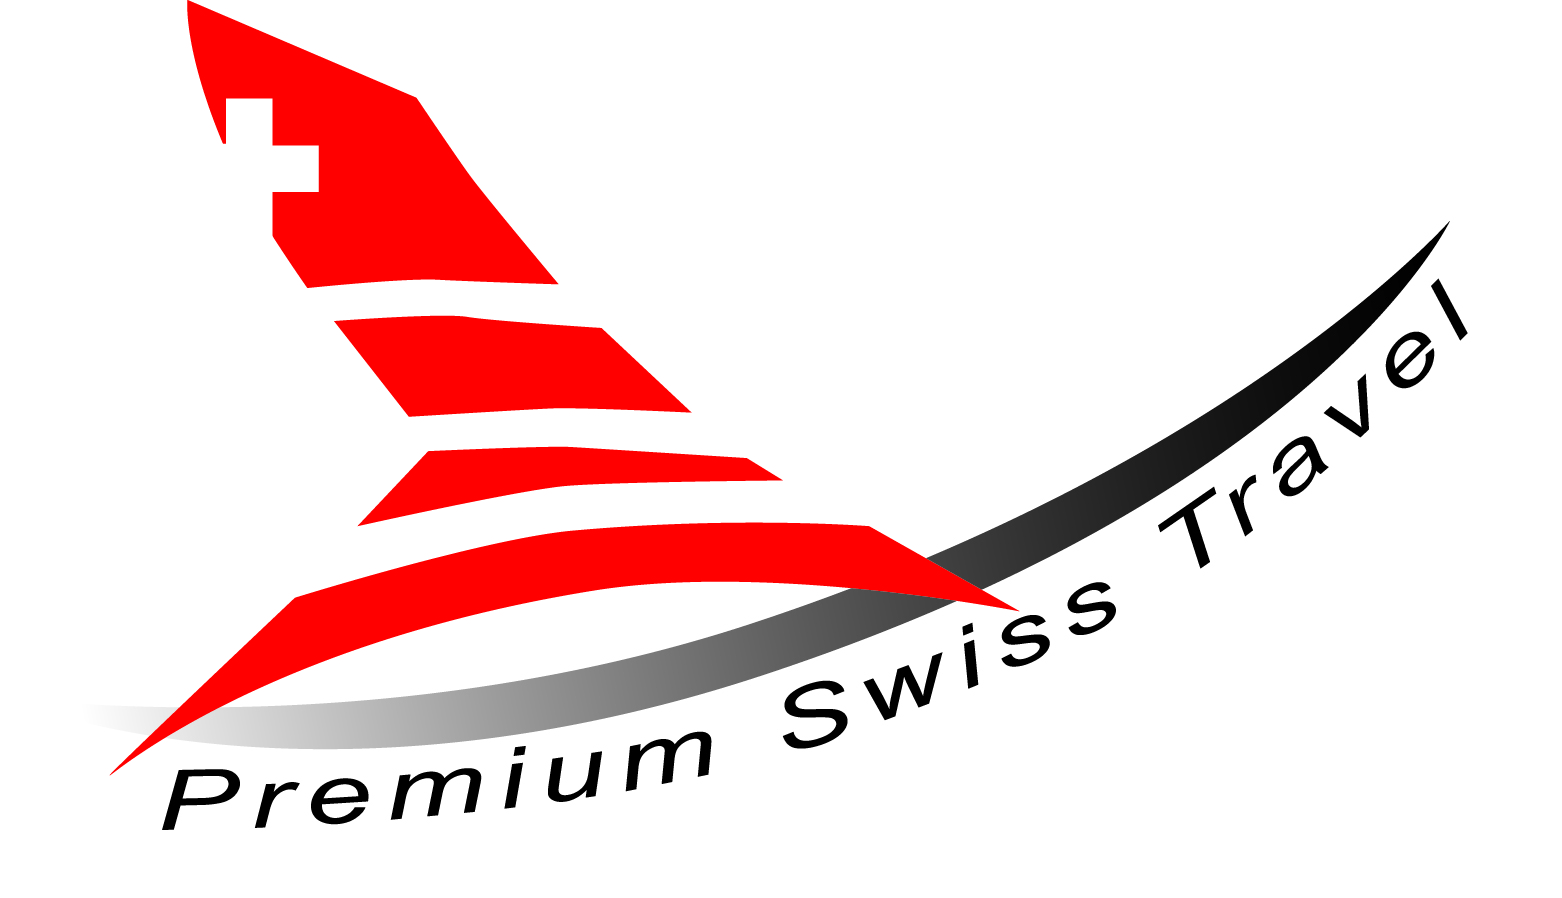 Premium Swiss Travel | Car rental list layouts - Premium Swiss Travel